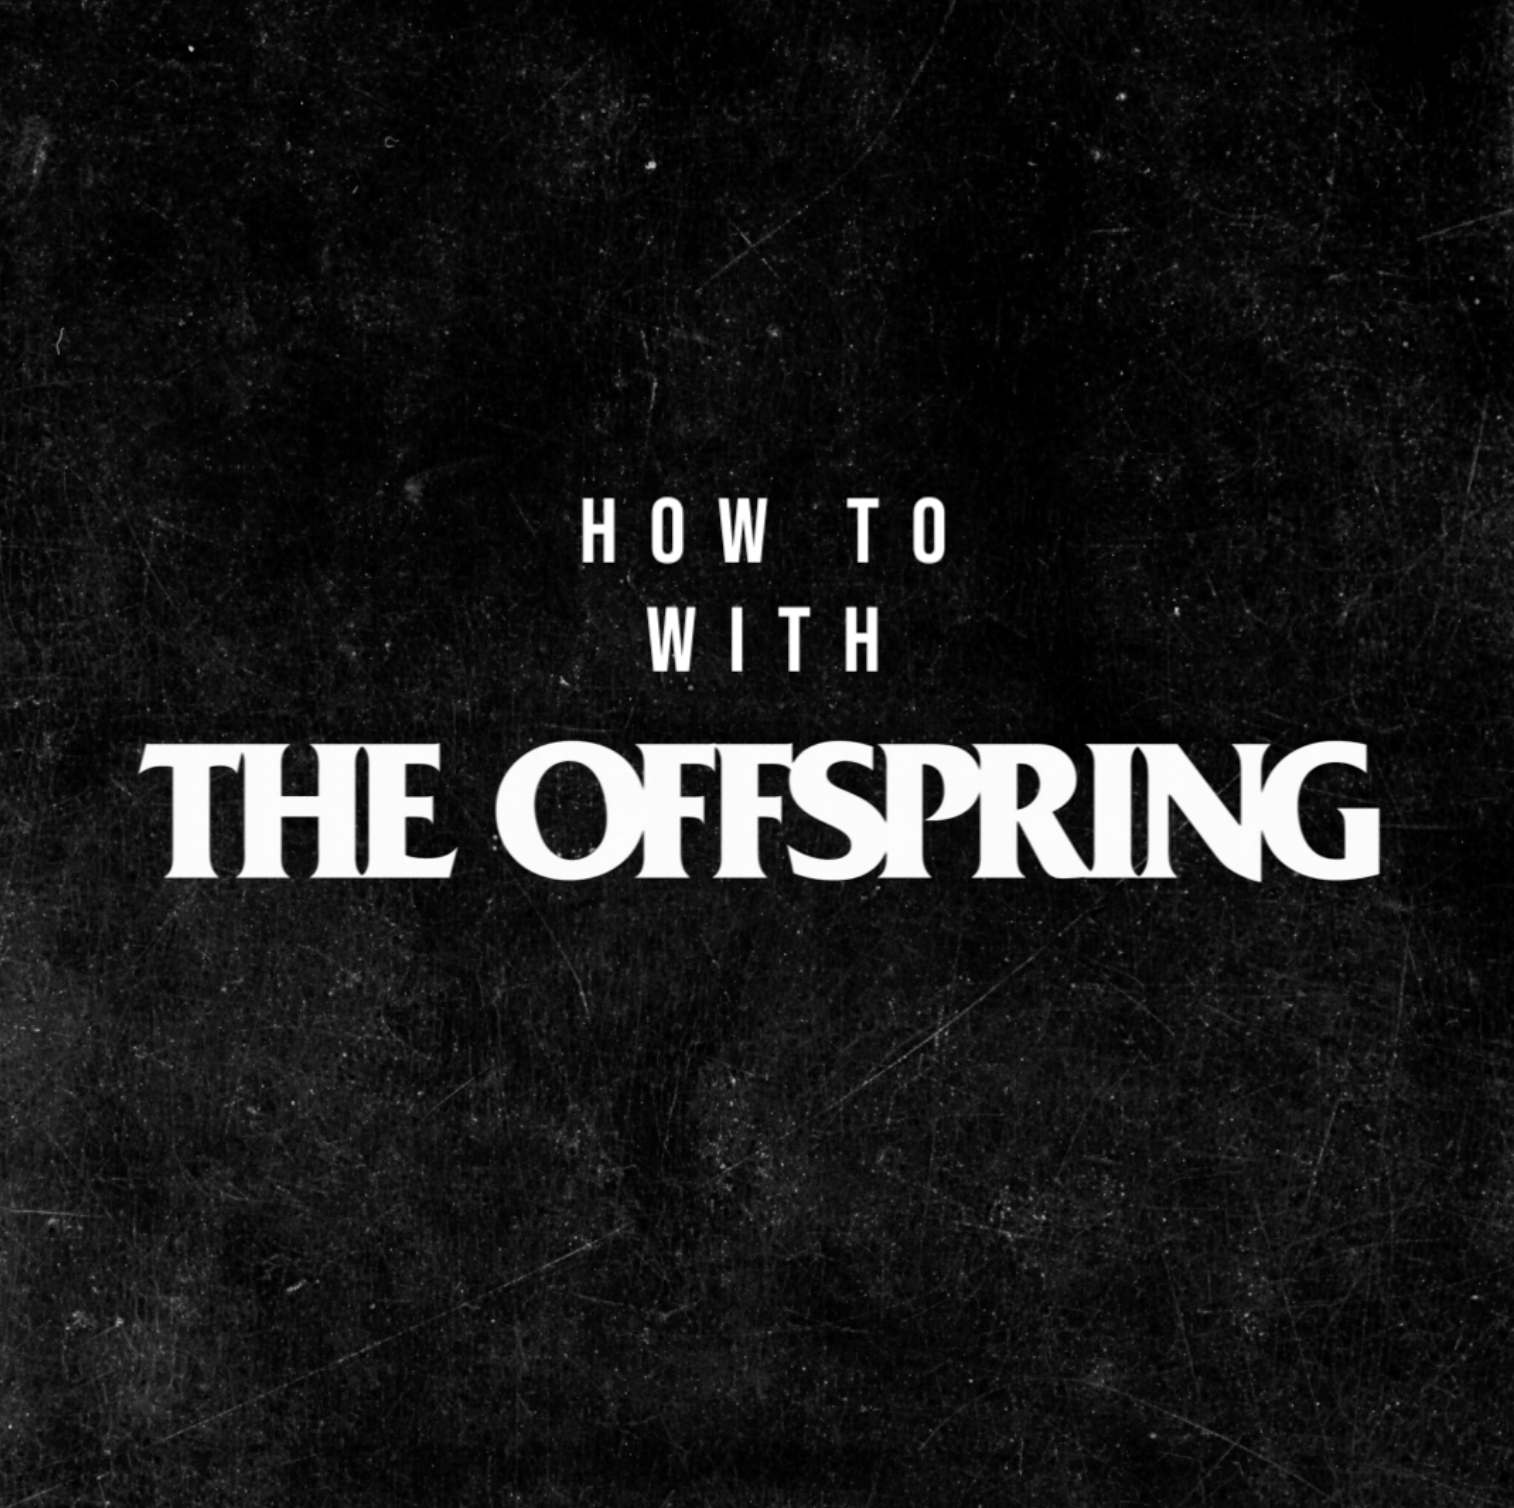 HOW TO: WITH THE OFFSPRING